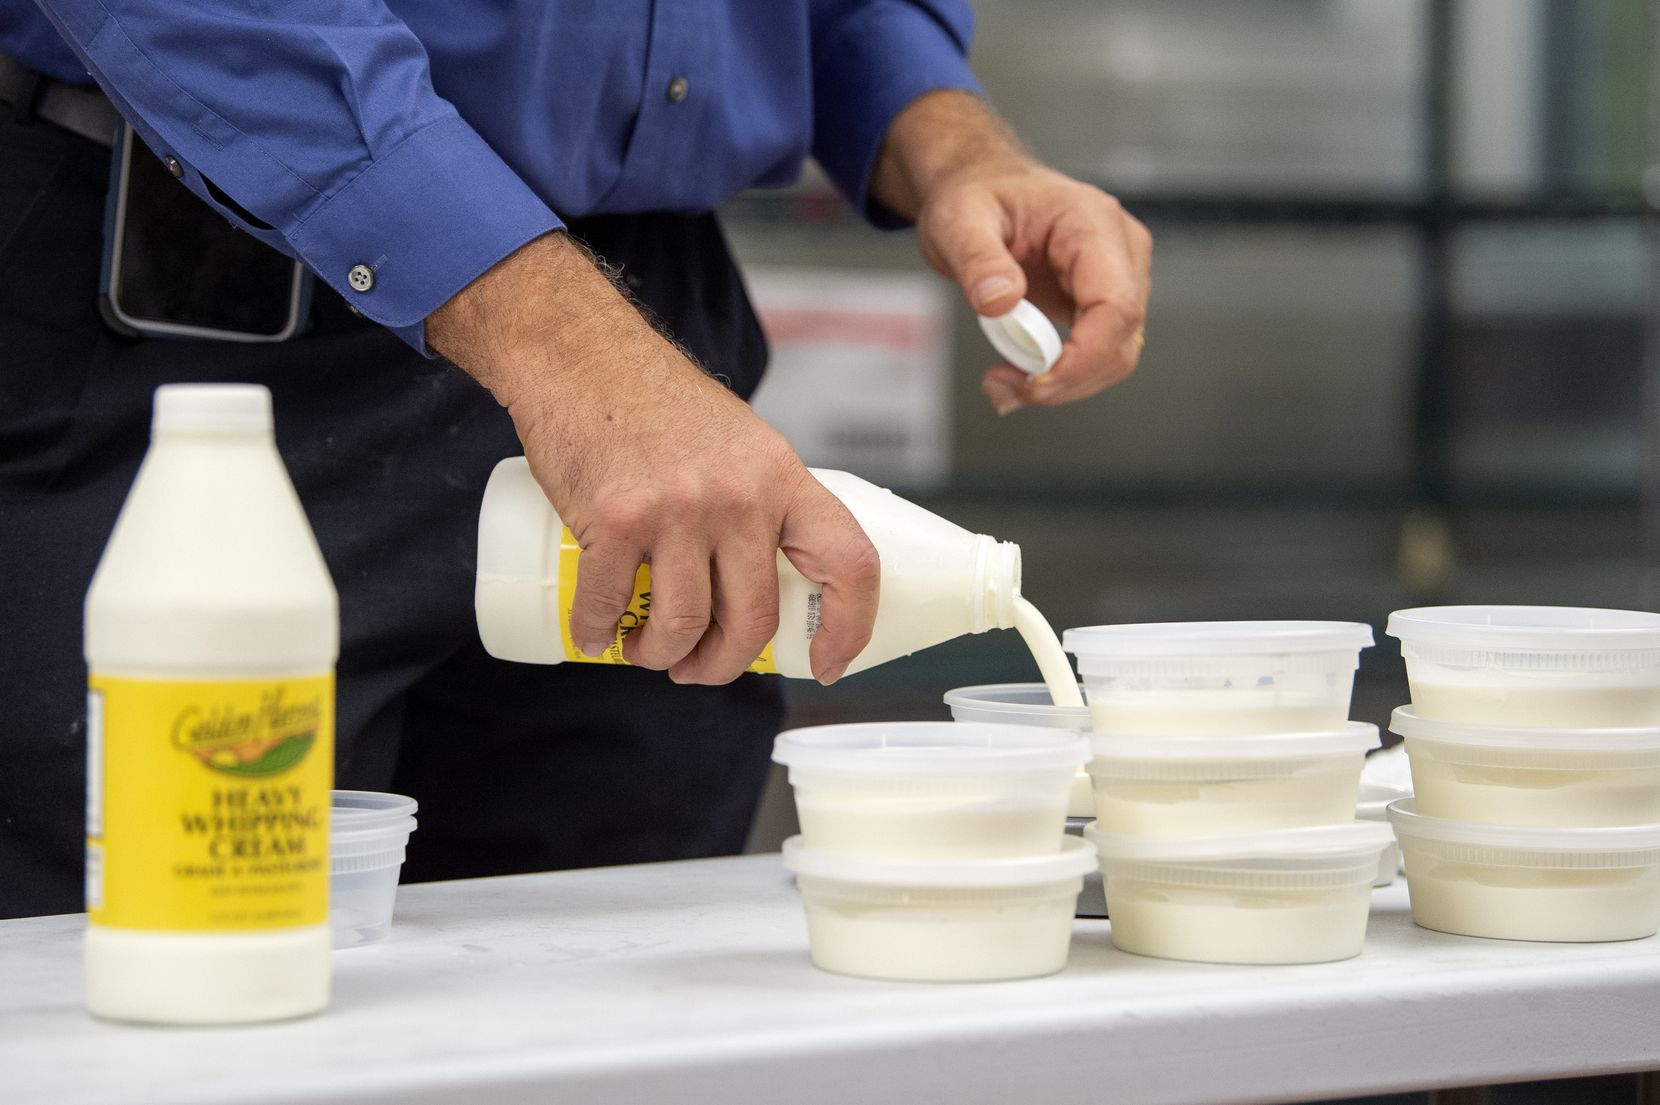 Garry Abbs, an instructional specialist of hospitality management at the Dallas College Culinary, Pastry and Hospitality Center, measures out whipping cream to be included in boxes of ingredients.